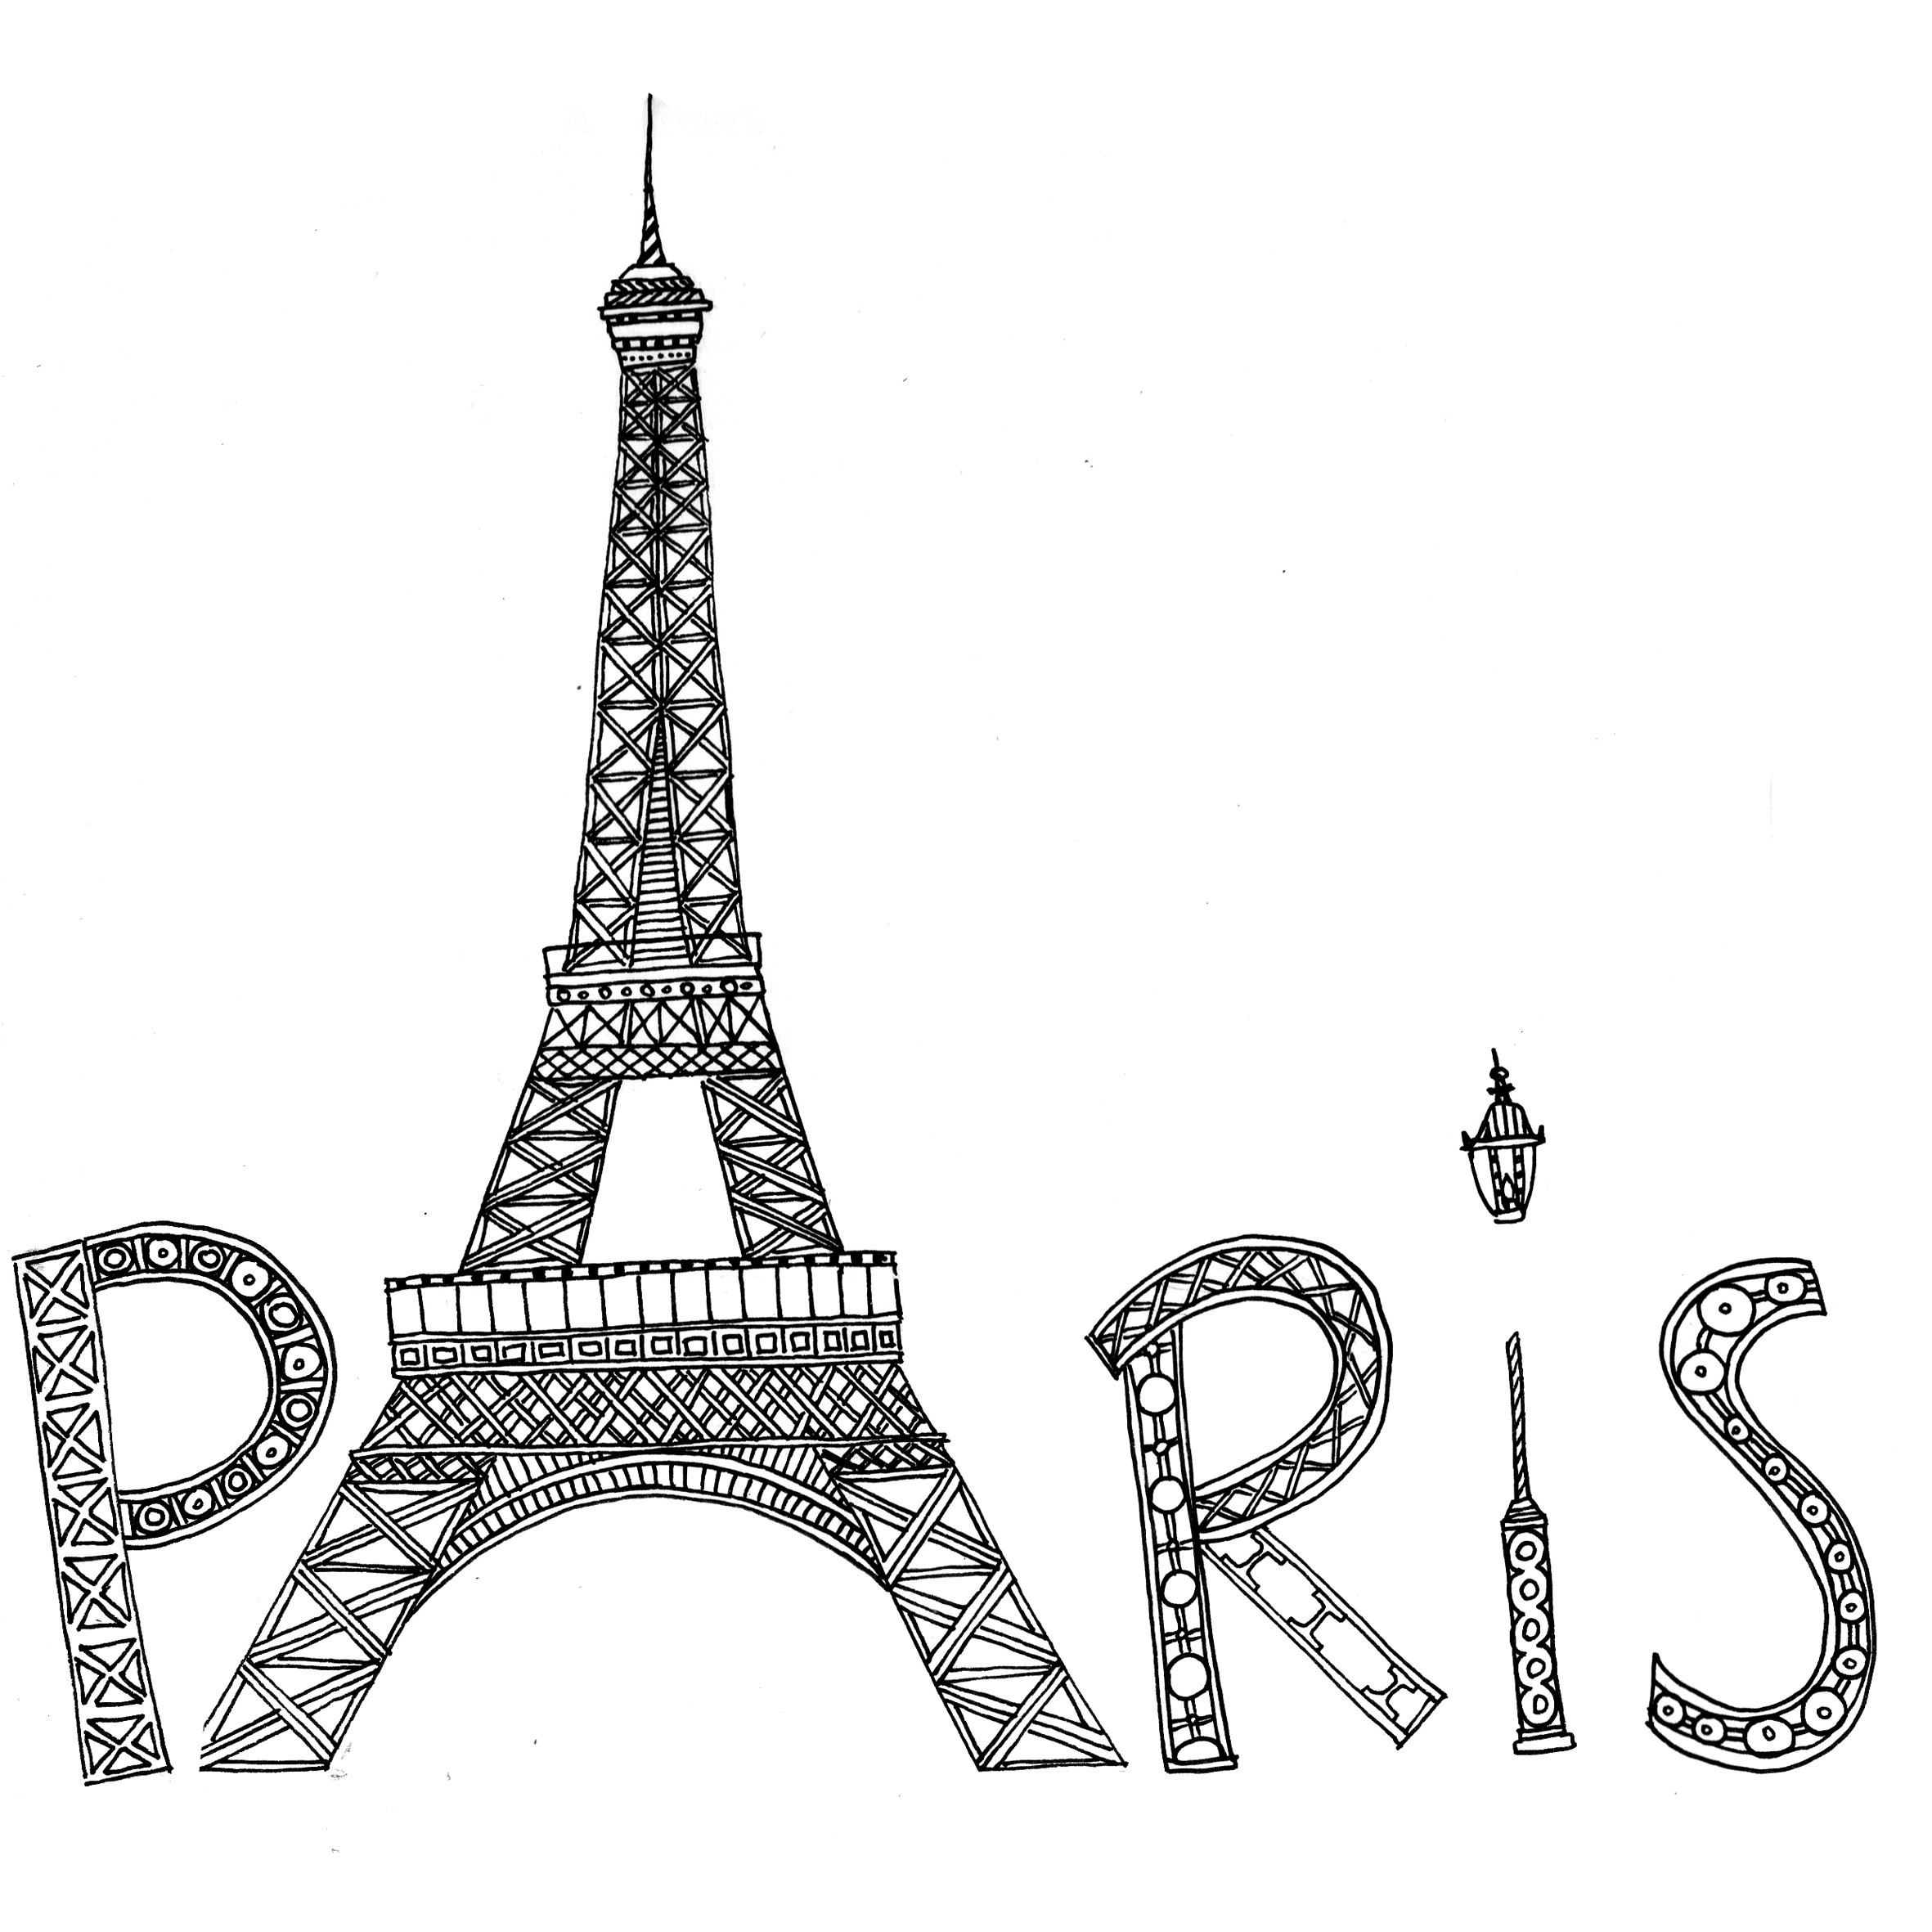 eiffel tower coloring pages free printable eiffel tower coloring pages for kids eiffel tower coloring pages